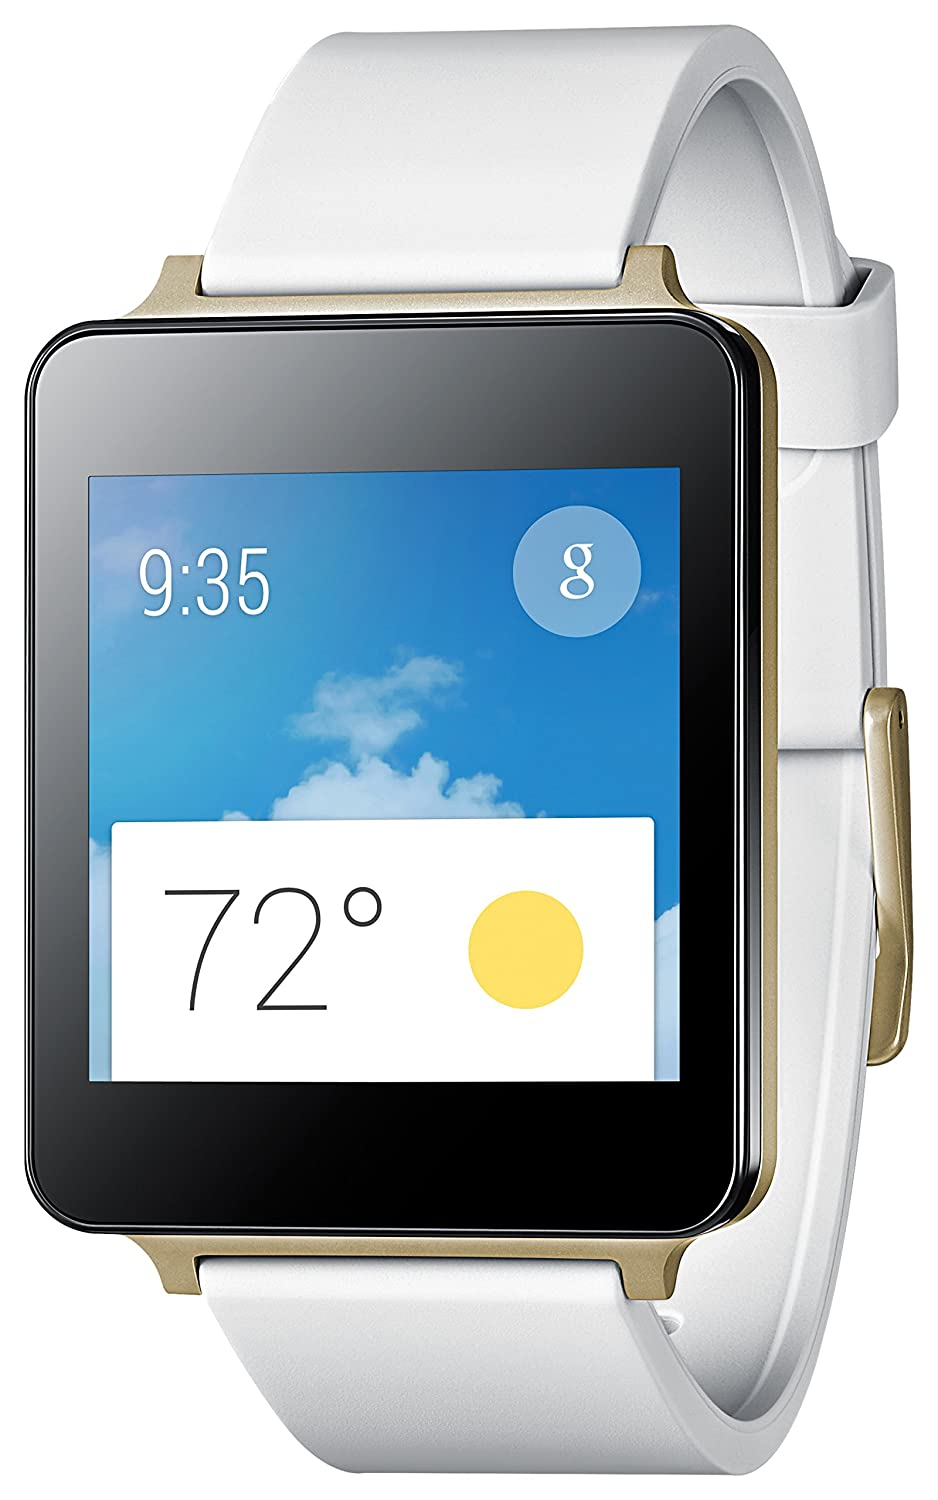 Amazon.com: LG Electronics G Watch - White: Cell Phones & Accessories